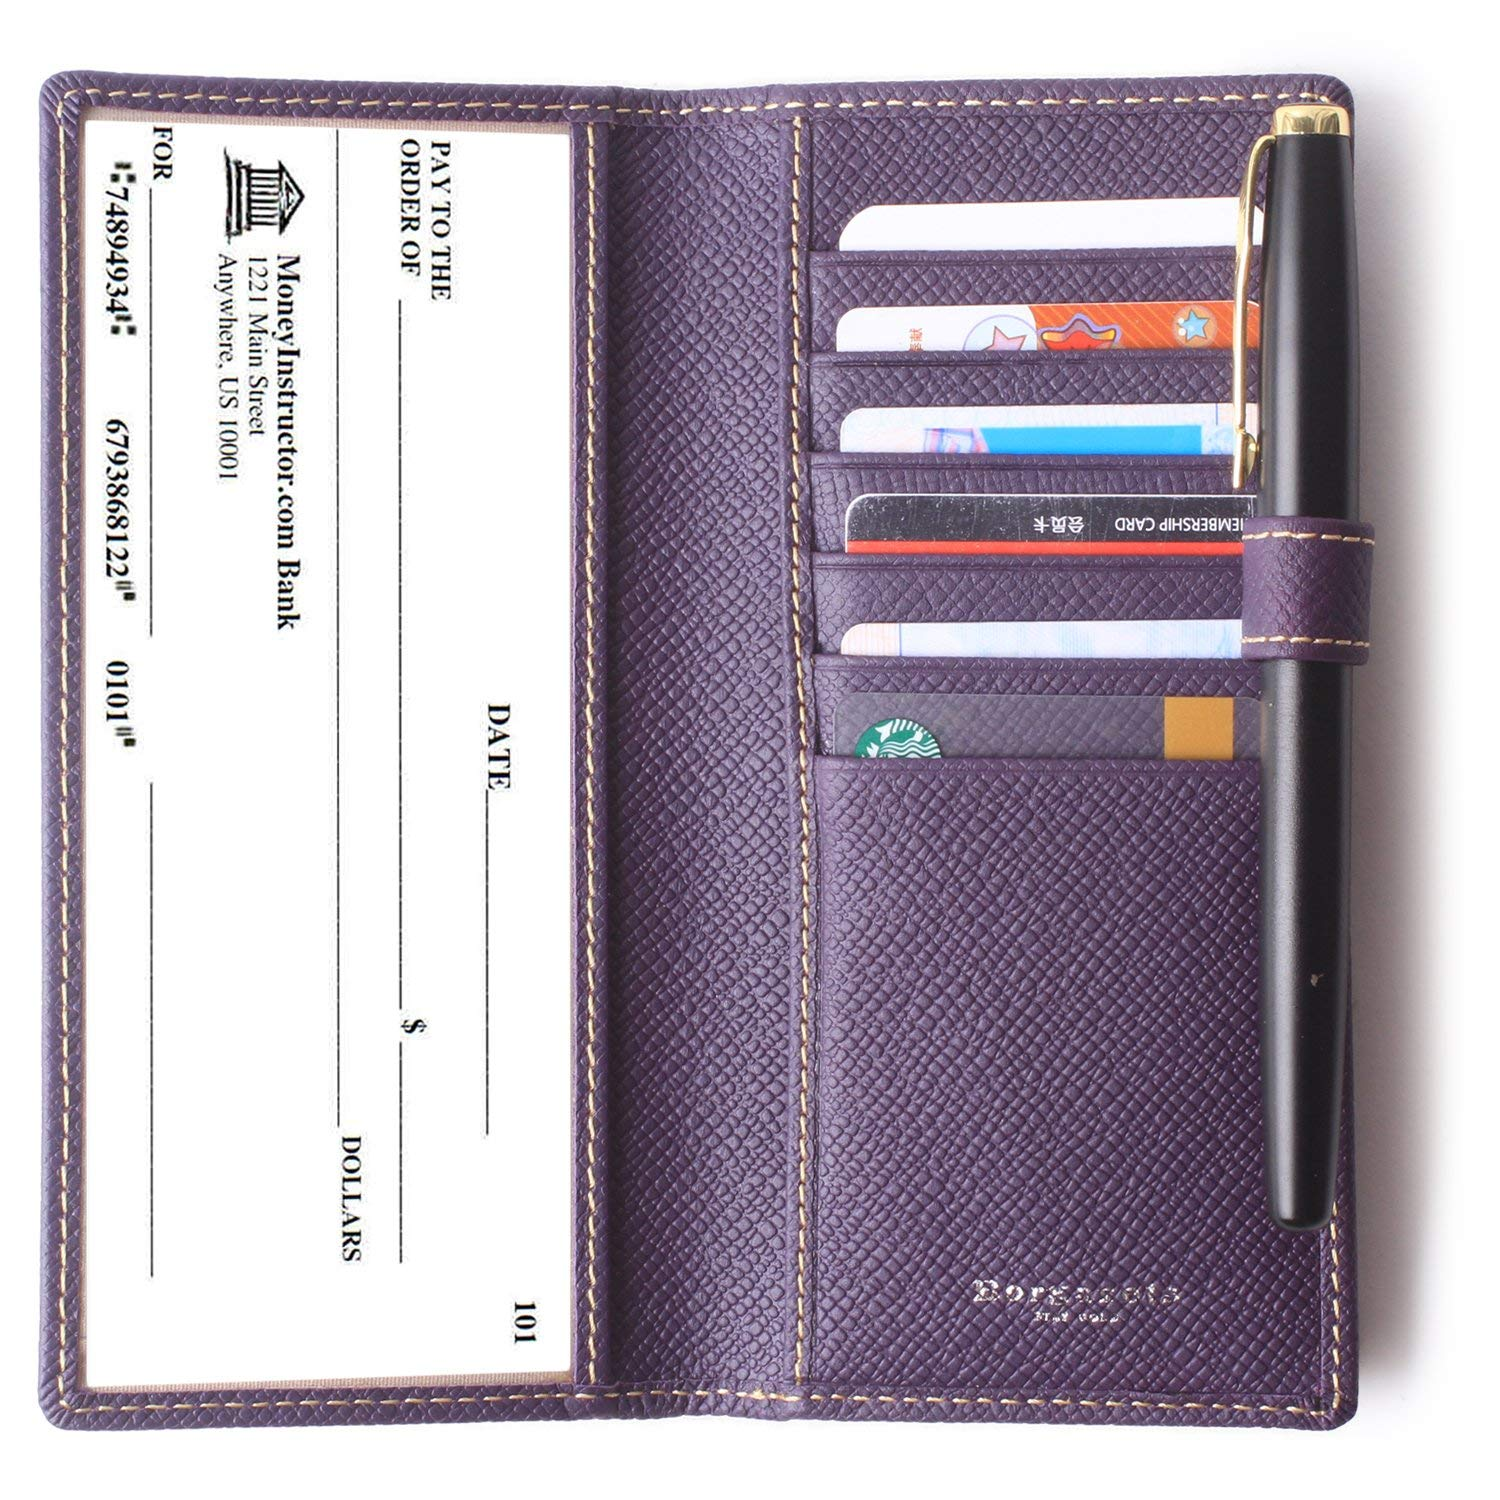 Leather Checkbook Cover For Men Women Checkbook Covers with Card Holder Wallet